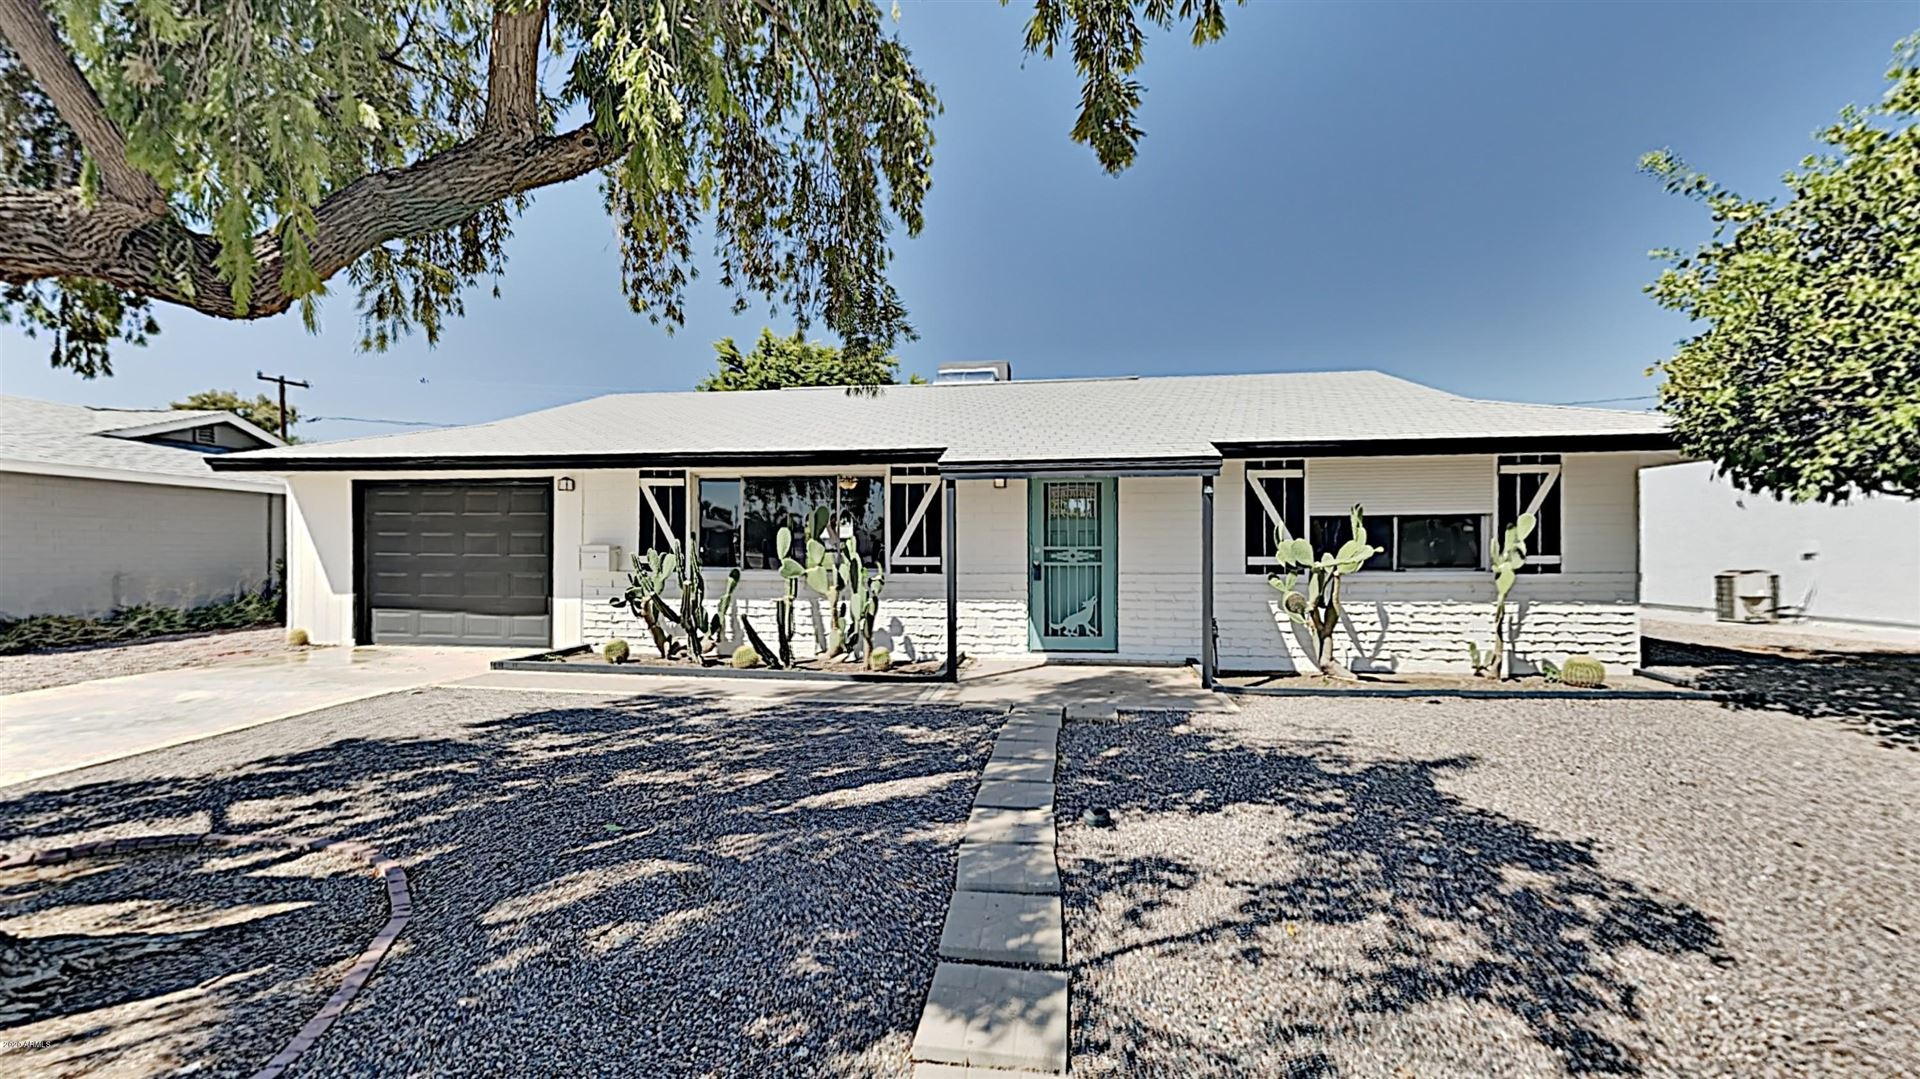 12402 N PEBBLE BEACH Drive, Sun City, AZ 85351 - MLS#: 6125363